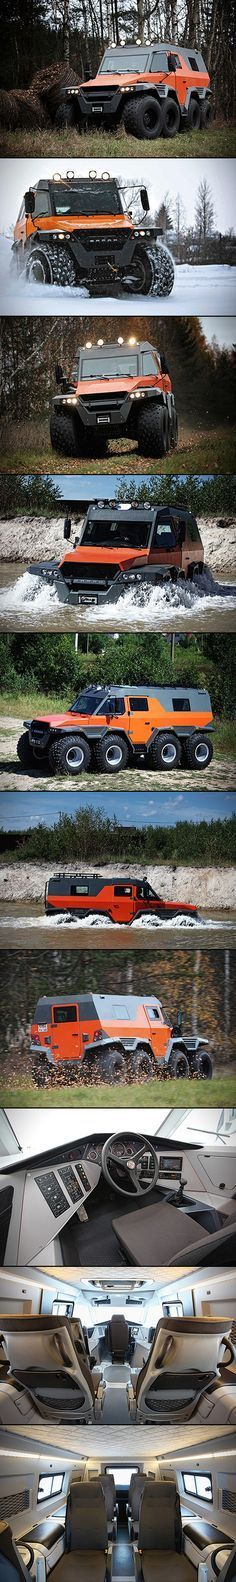 Avtoros Shaman all-terrain vehicle. Measuring in at 6 meters long, 3 meters high, and meters wide, this beast can tackle literally any terrain, from land and snow right down to floating through water. Cool Trucks, Big Trucks, Cool Cars, Ambulance, M Bmw, Hors Route, Offroader, Terrain Vehicle, Bug Out Vehicle